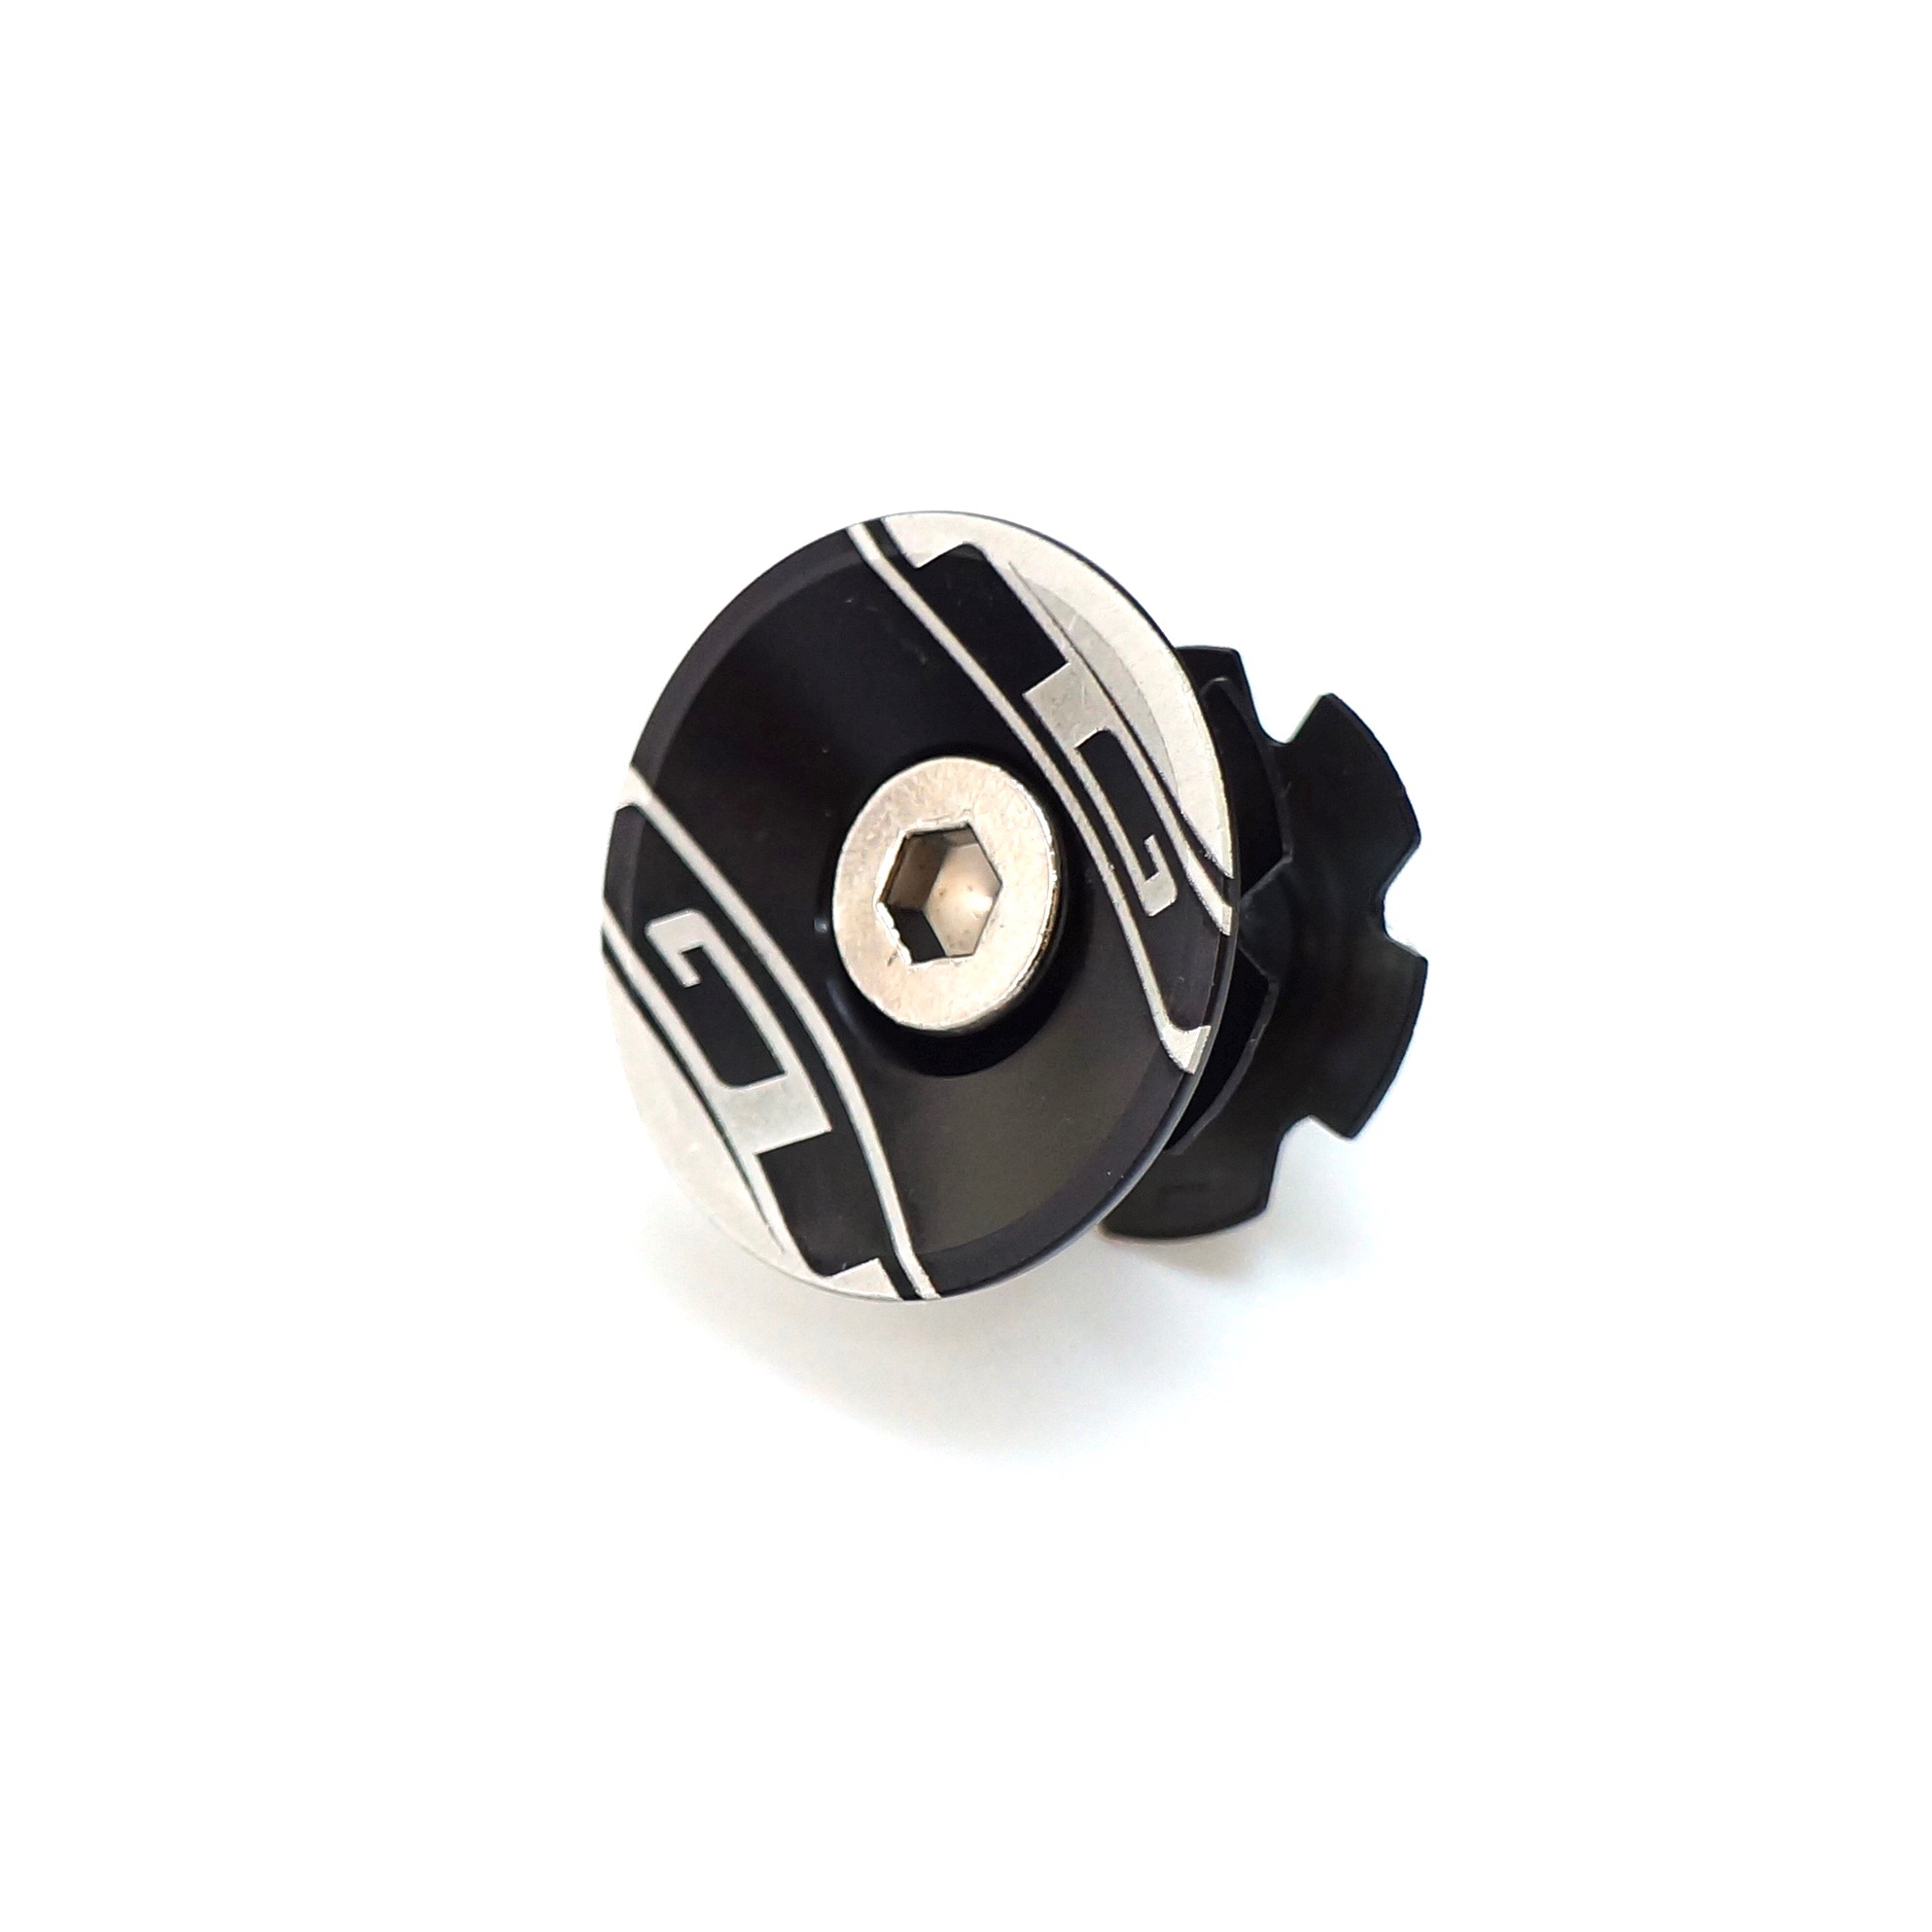 """GT Bicycle 1-1//8/"""" Headset Star Nut /& Top Cap Set Black// Gold// Gray"""